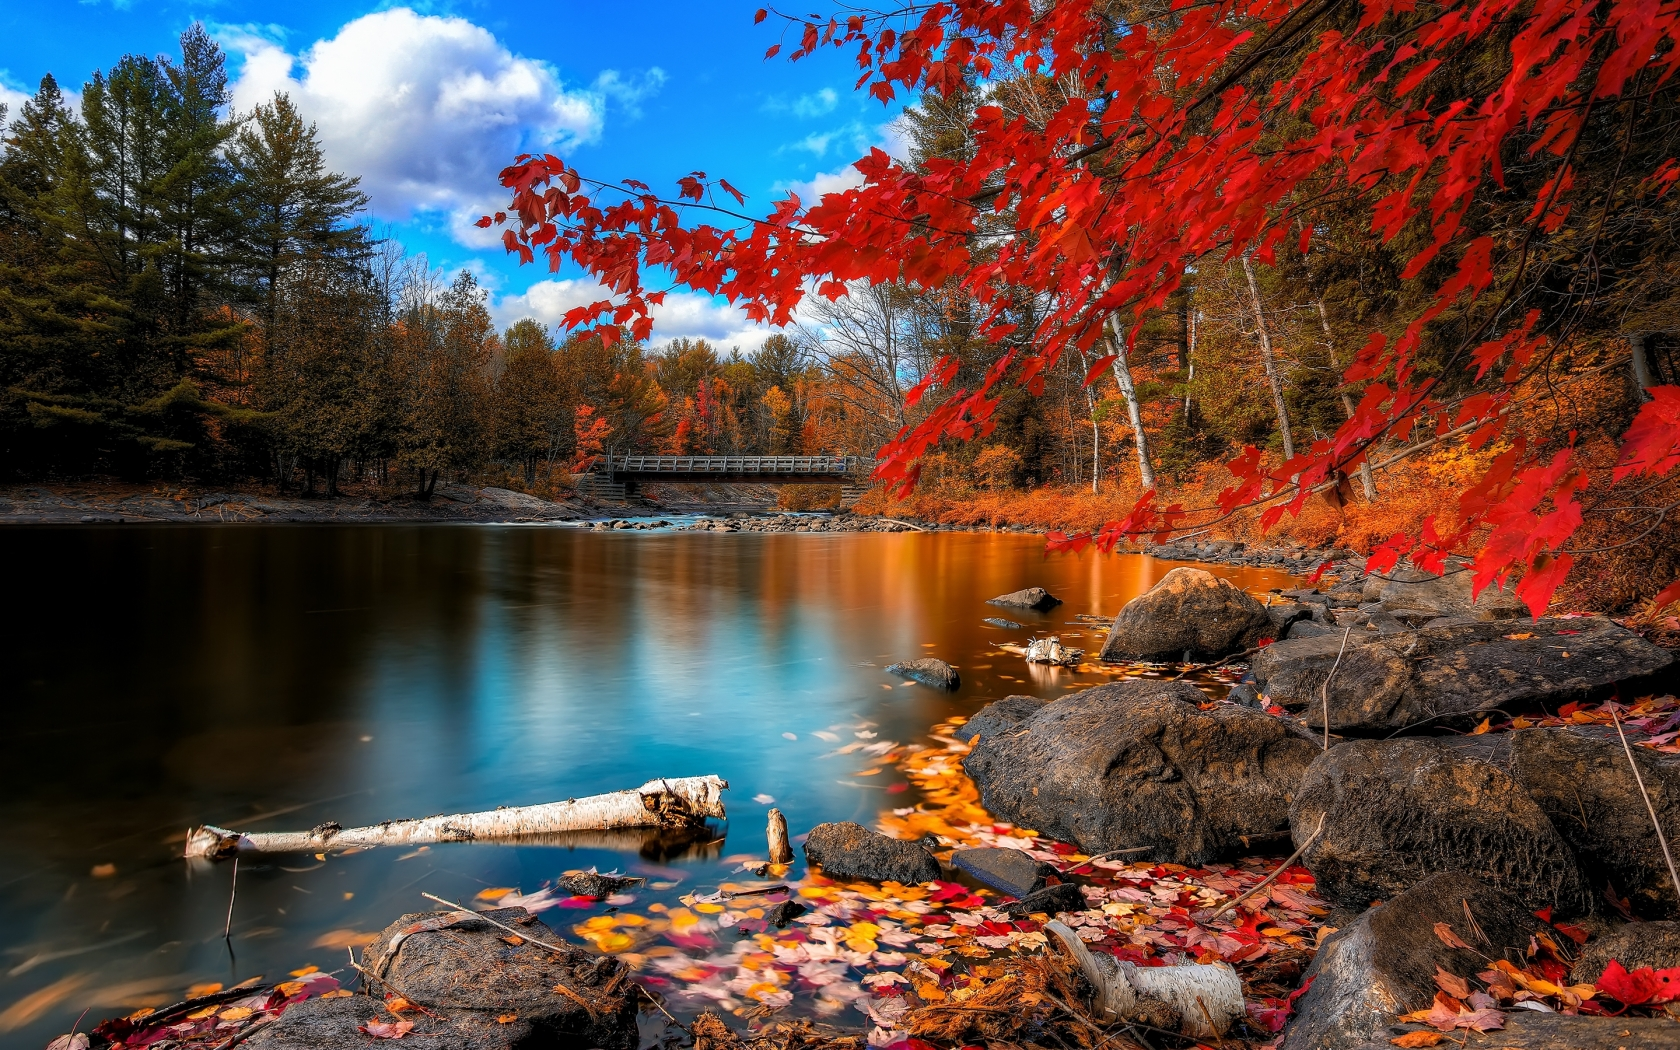 Fall Scenery Wallpaper